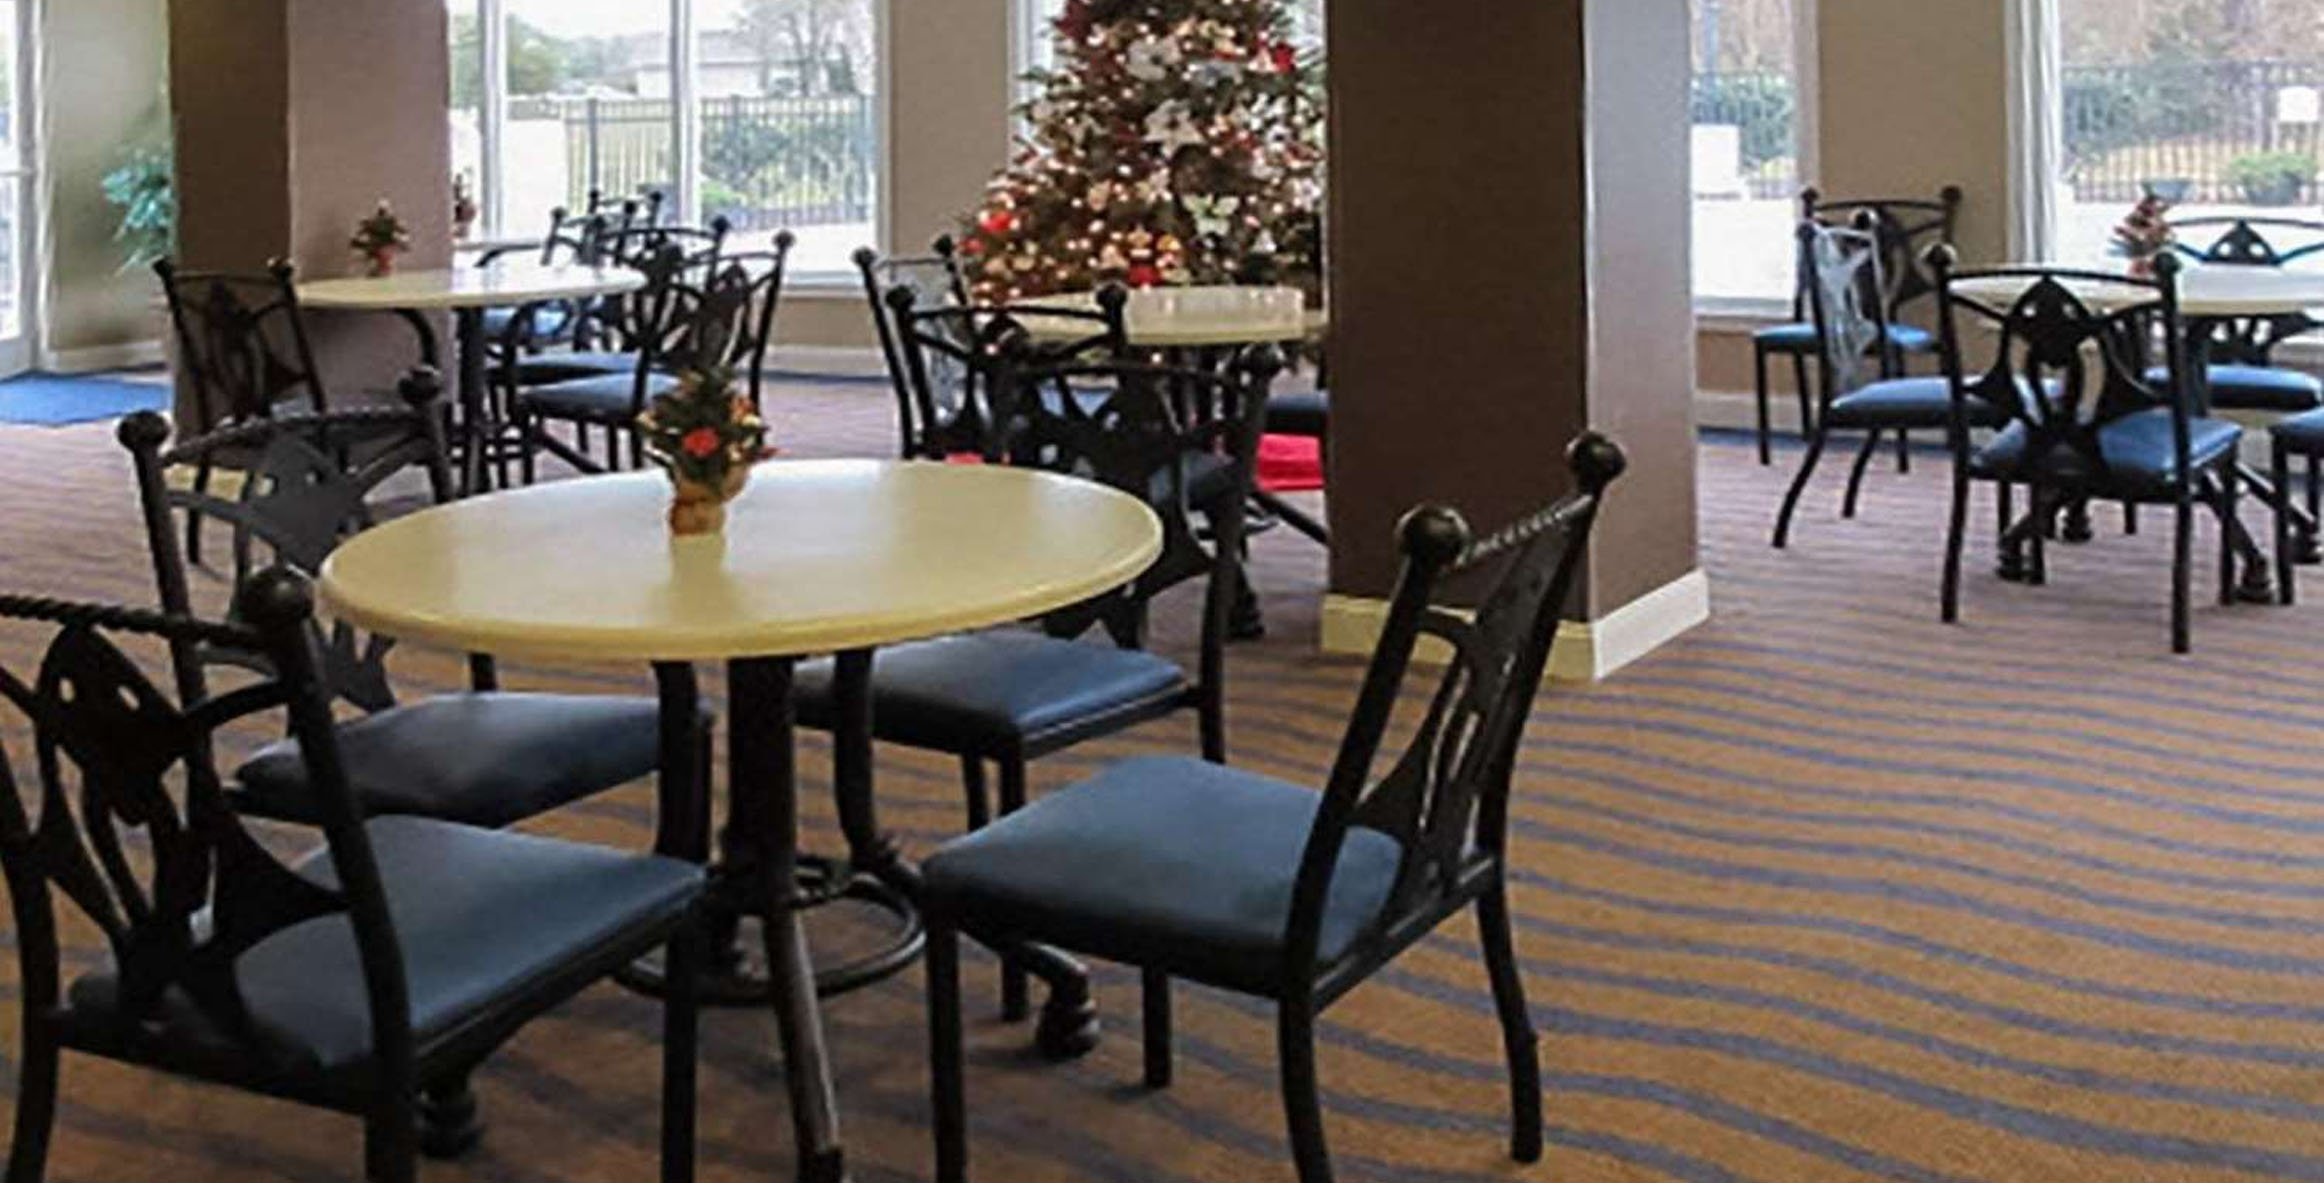 Quality Inn Suites Sneads Ferry North Topsail Beach Hotel Lowest Rates Online